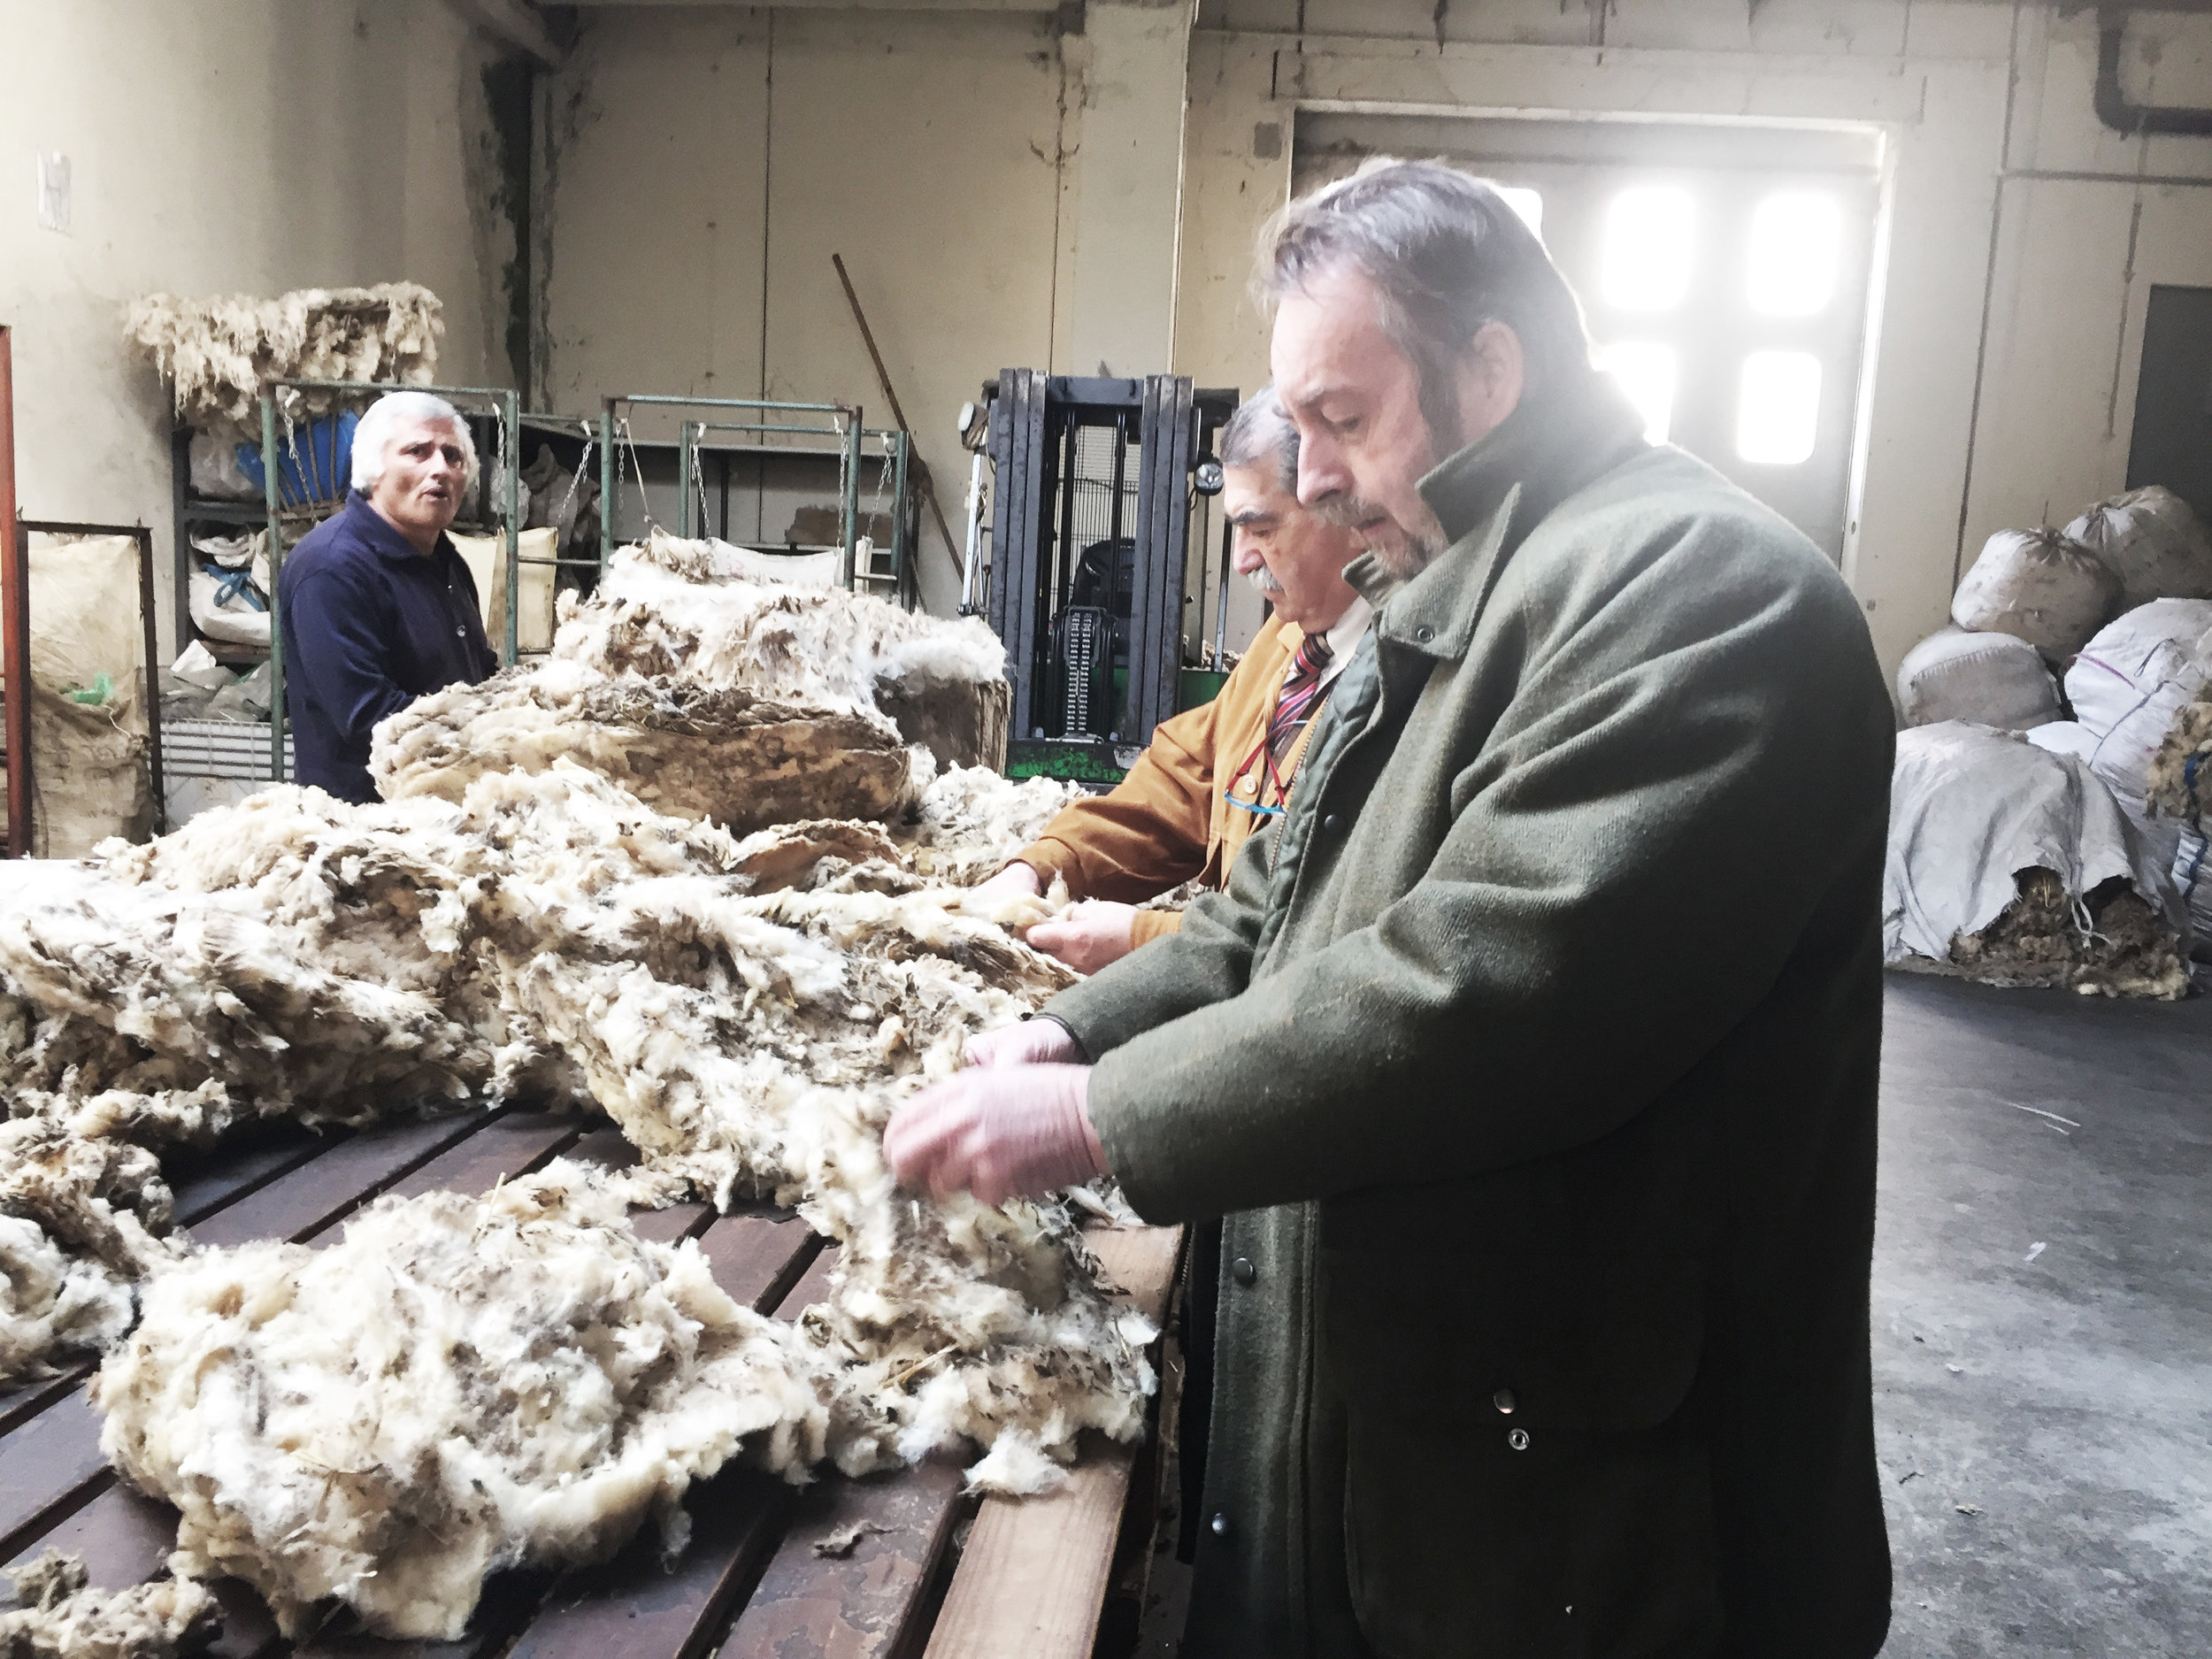 Three men are gathered at a sorting table in a light, airy factory with their hands sorting through wool